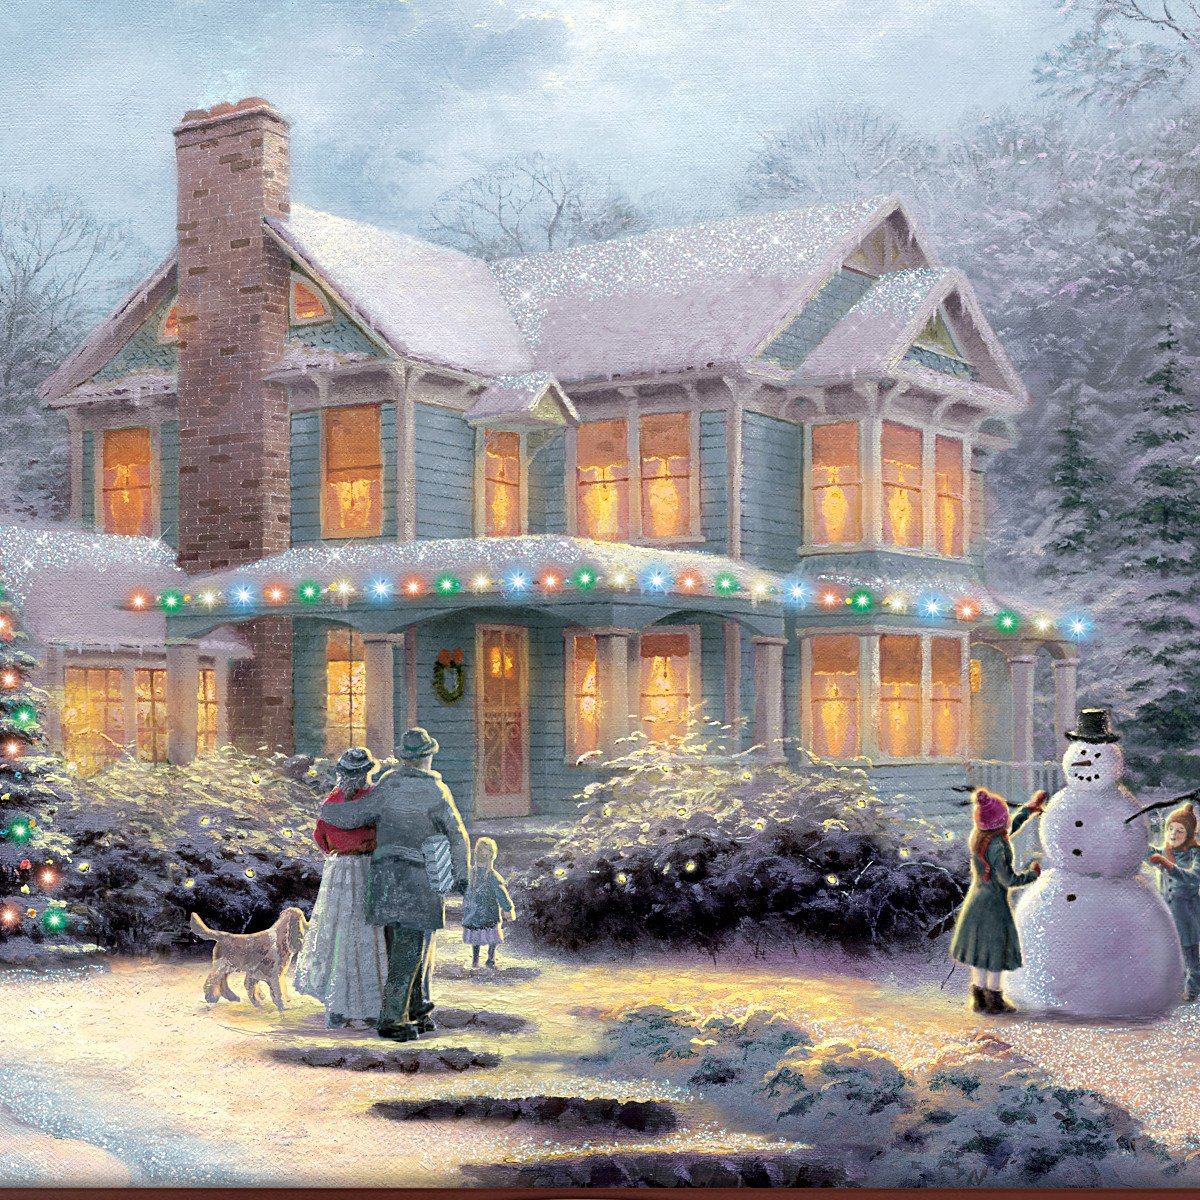 Amazon.com: Thomas Kinkade Victorian Family Christmas Illuminated ...